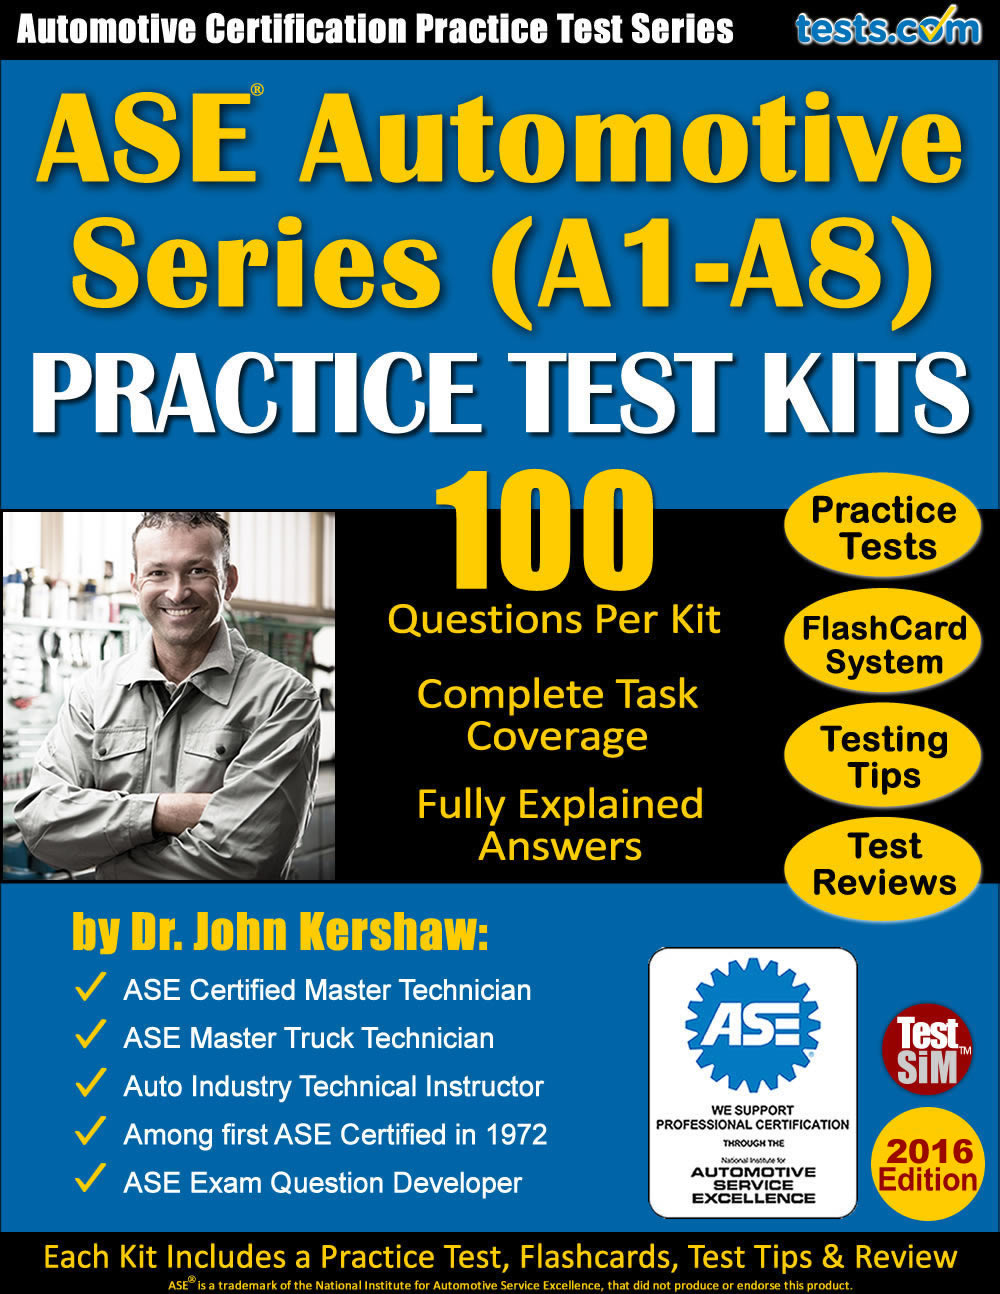 Ase automotive certification practice test ase automotive certification practice test kits xflitez Choice Image